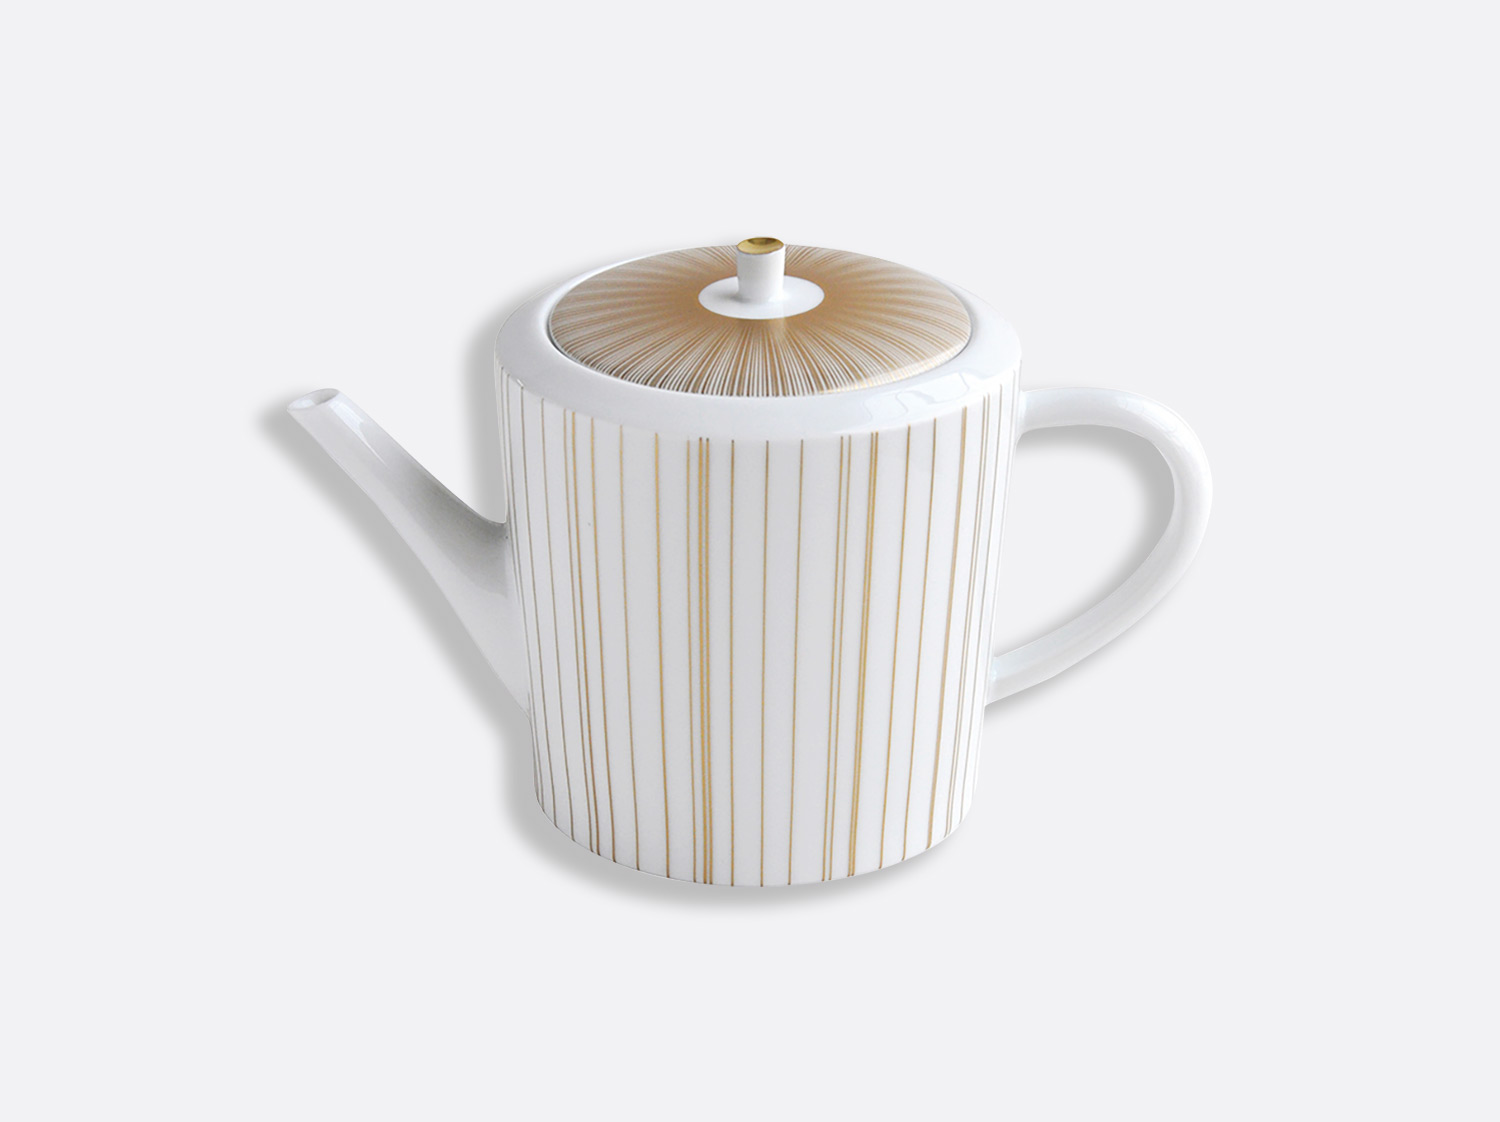 China Hot beverage server H. 15 cm of the collection Sol | Bernardaud